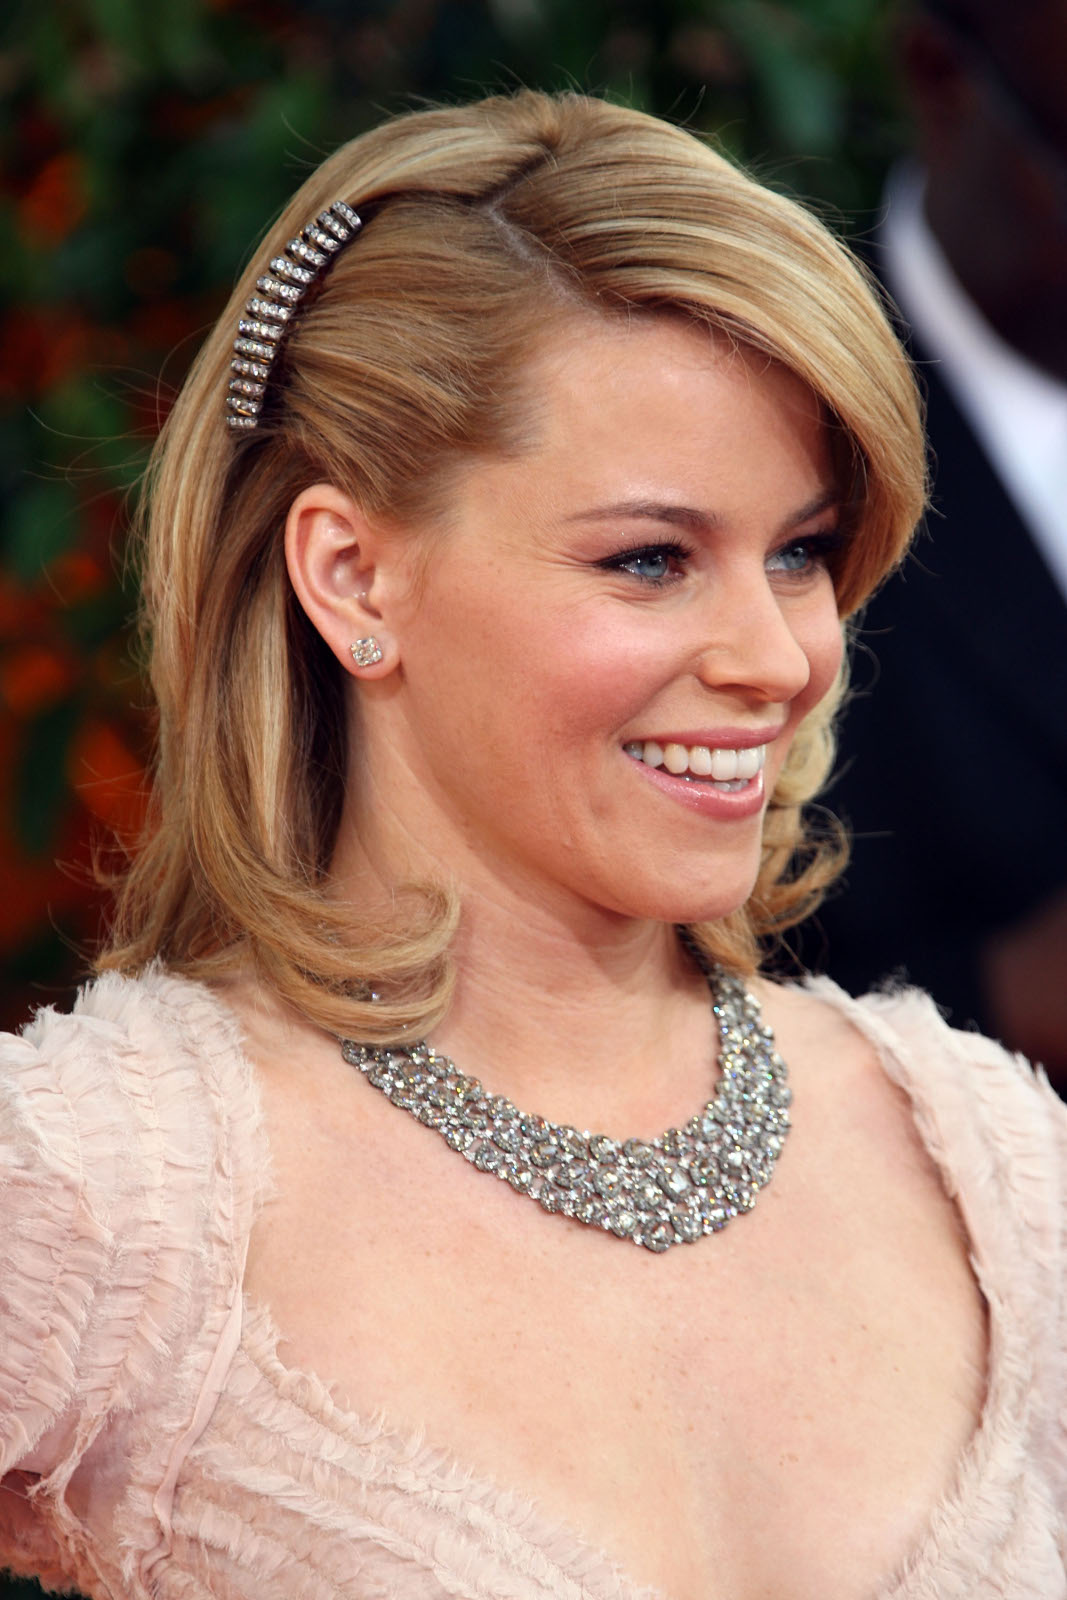 Banks Haircut : Elizabeth Banks Hairstyles - Haircuts And Hairstyles - Elizabeth Banks ...